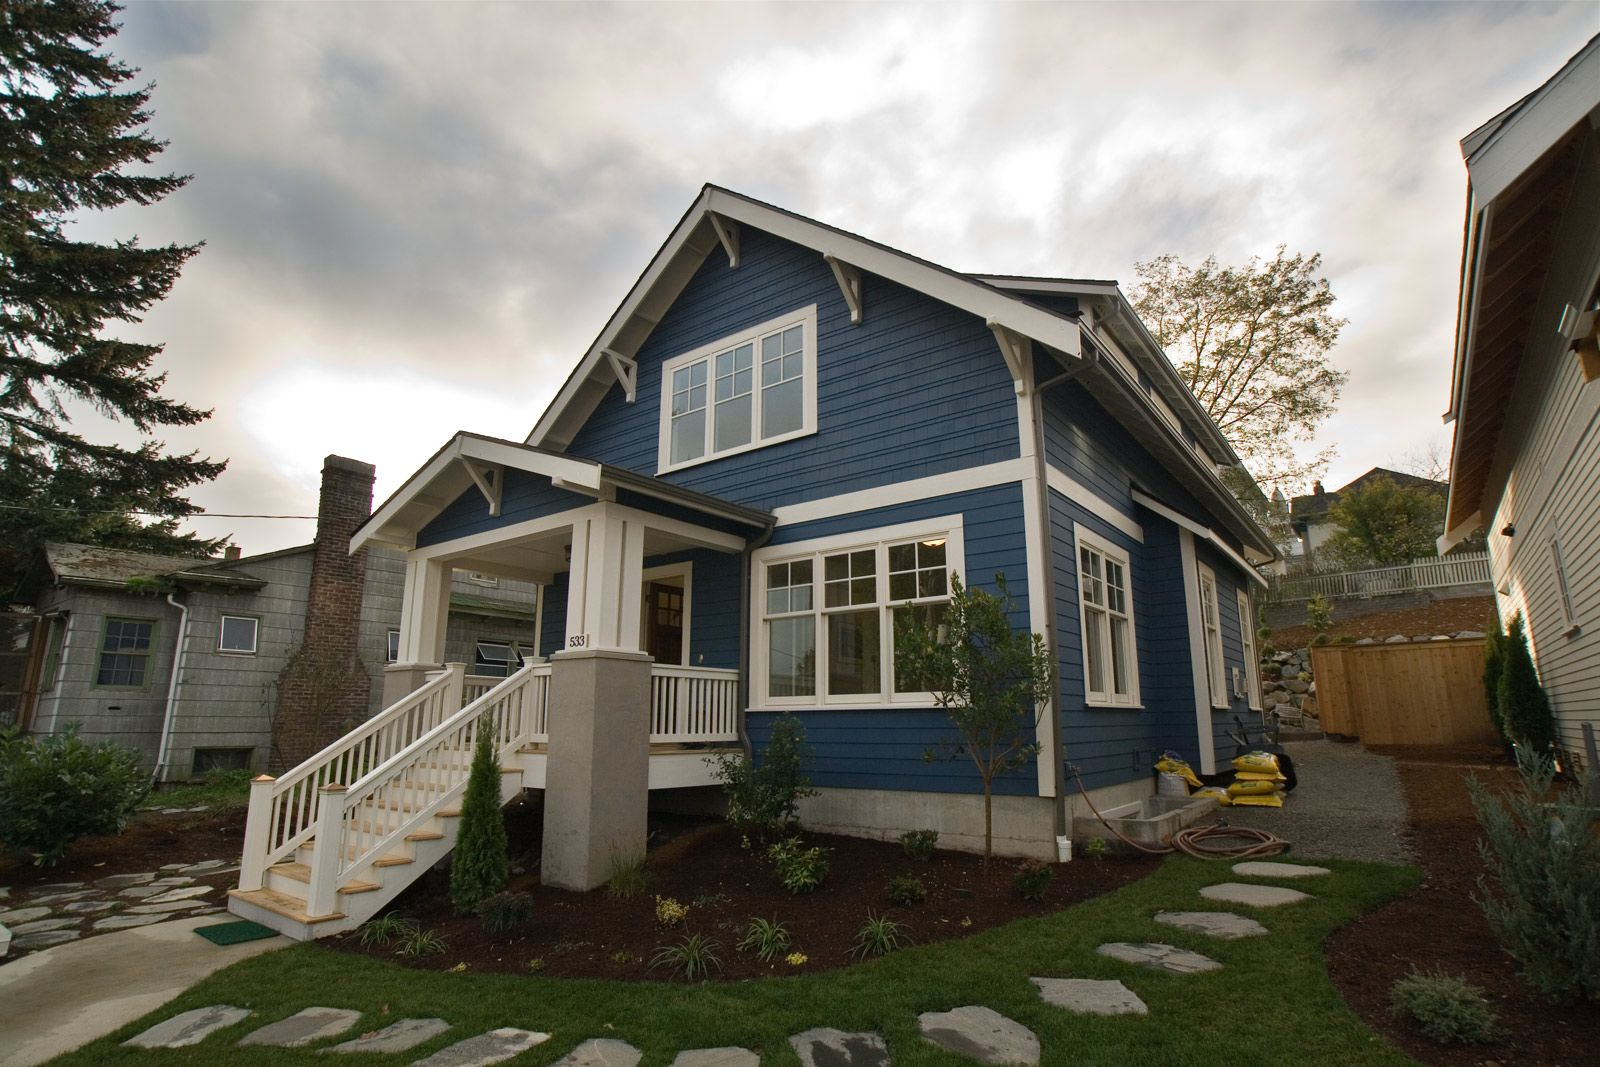 Classic craftsman bungalow colors for sale new 20th ave for Stucco house paint colors